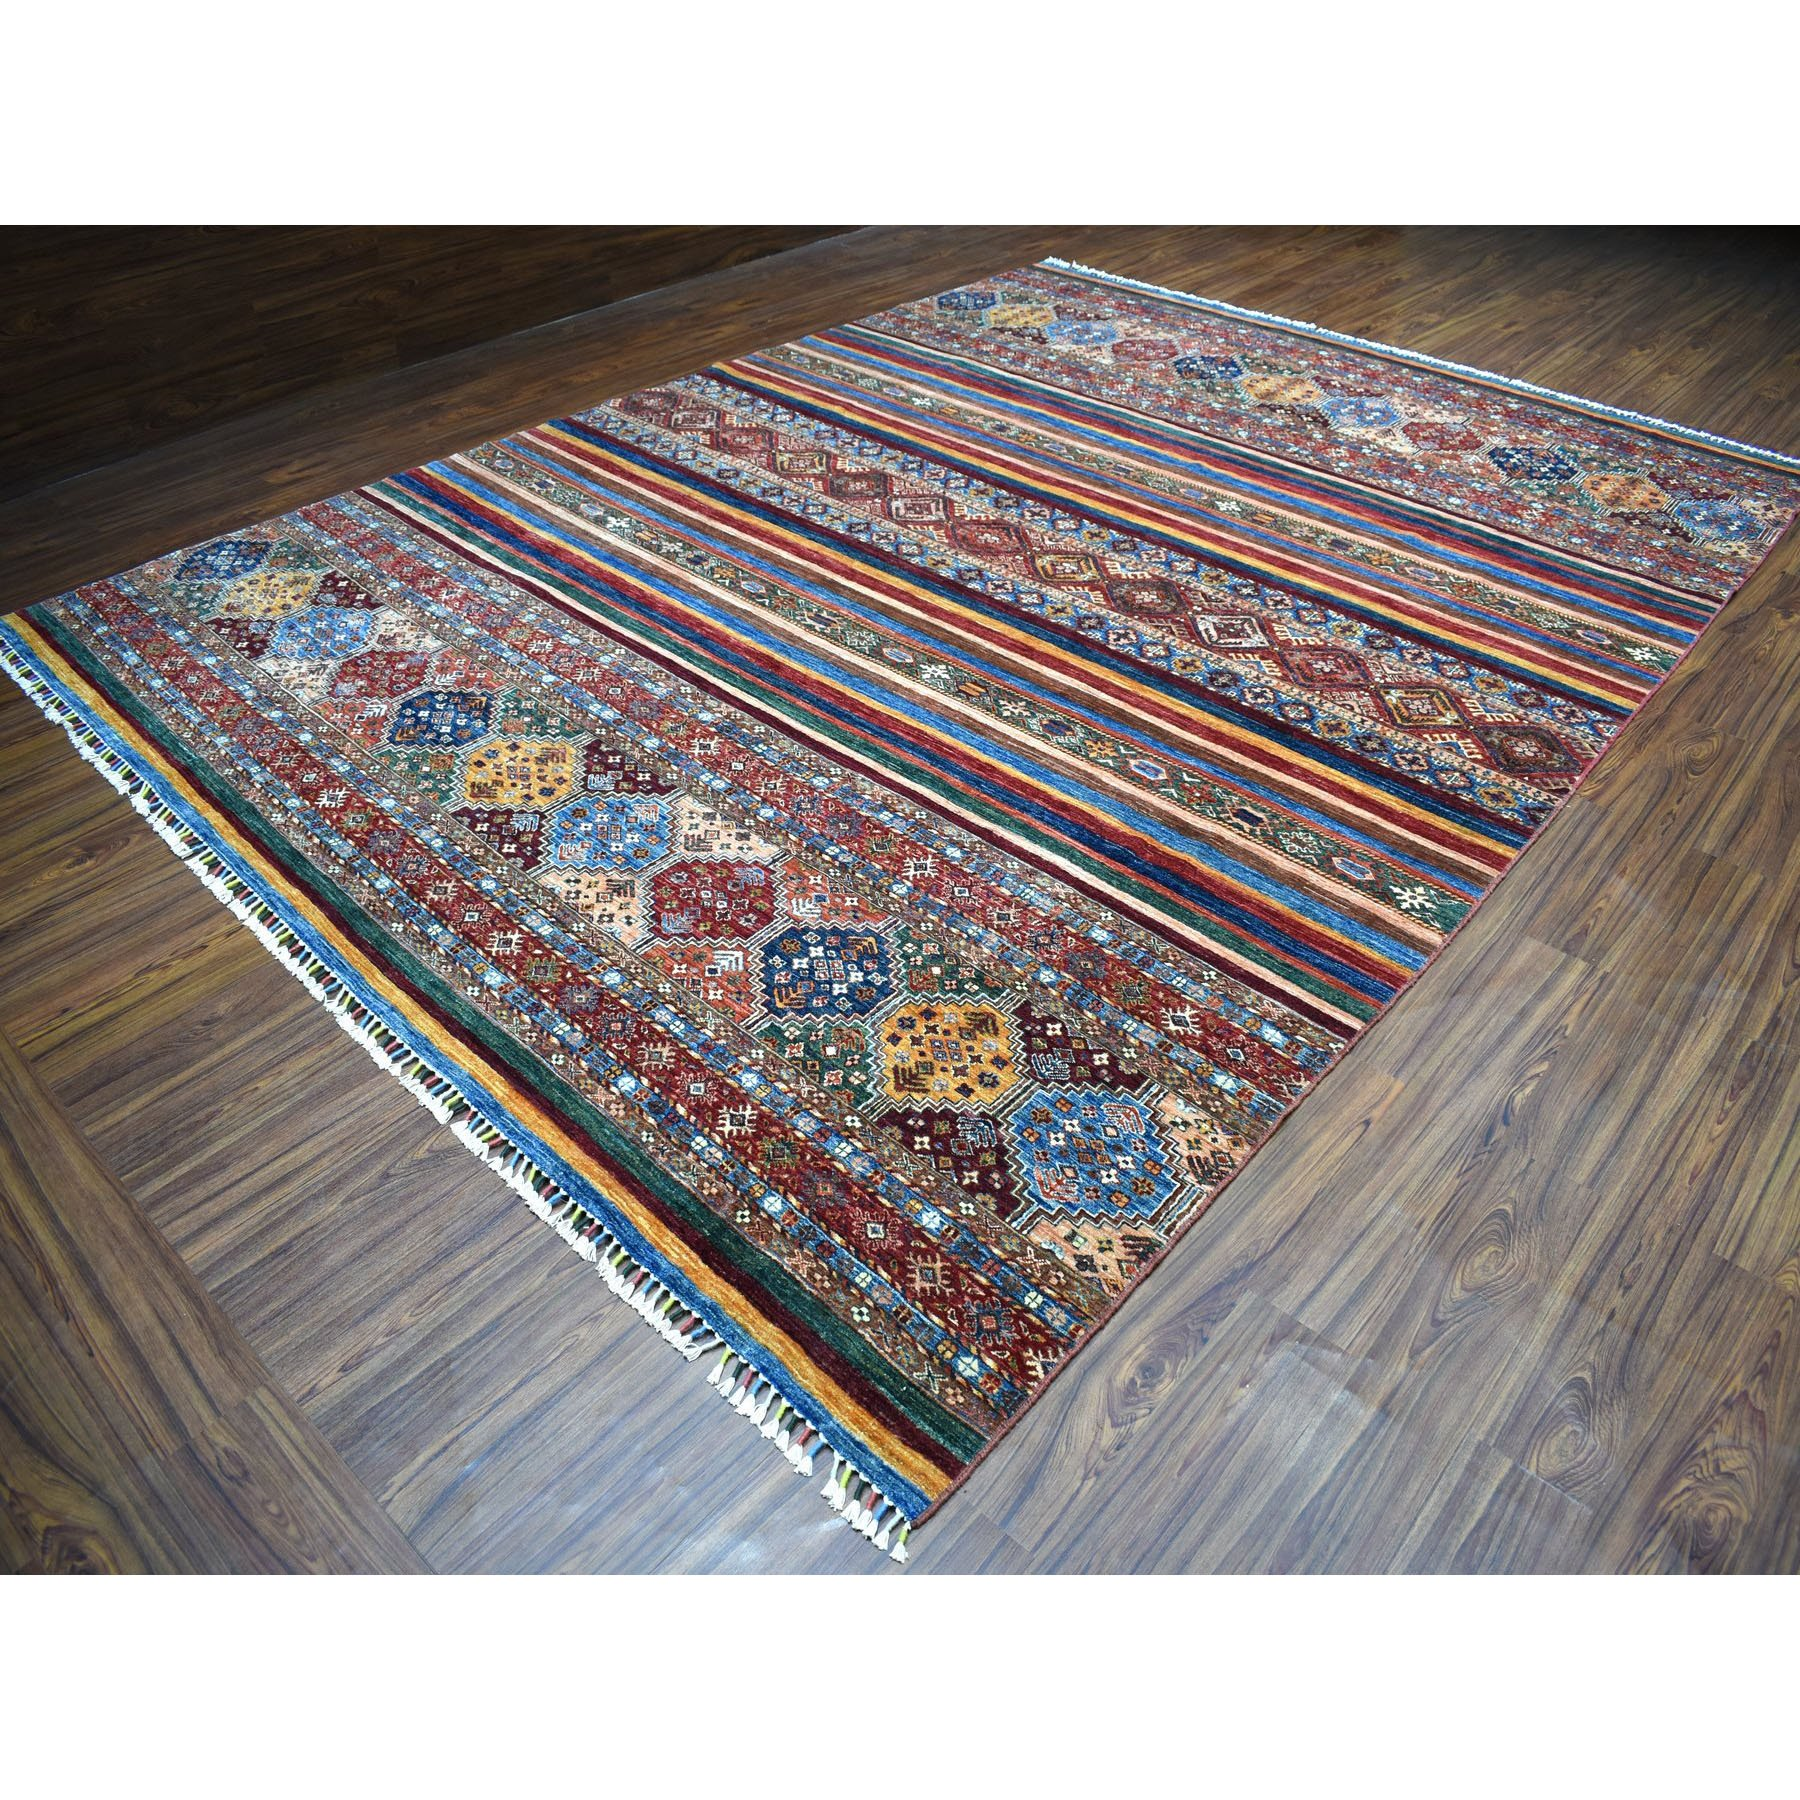 "10'x13'3"" Khorjin Design Colorful Super Kazak Pure Wool Hand Knotted Oriental Rug"